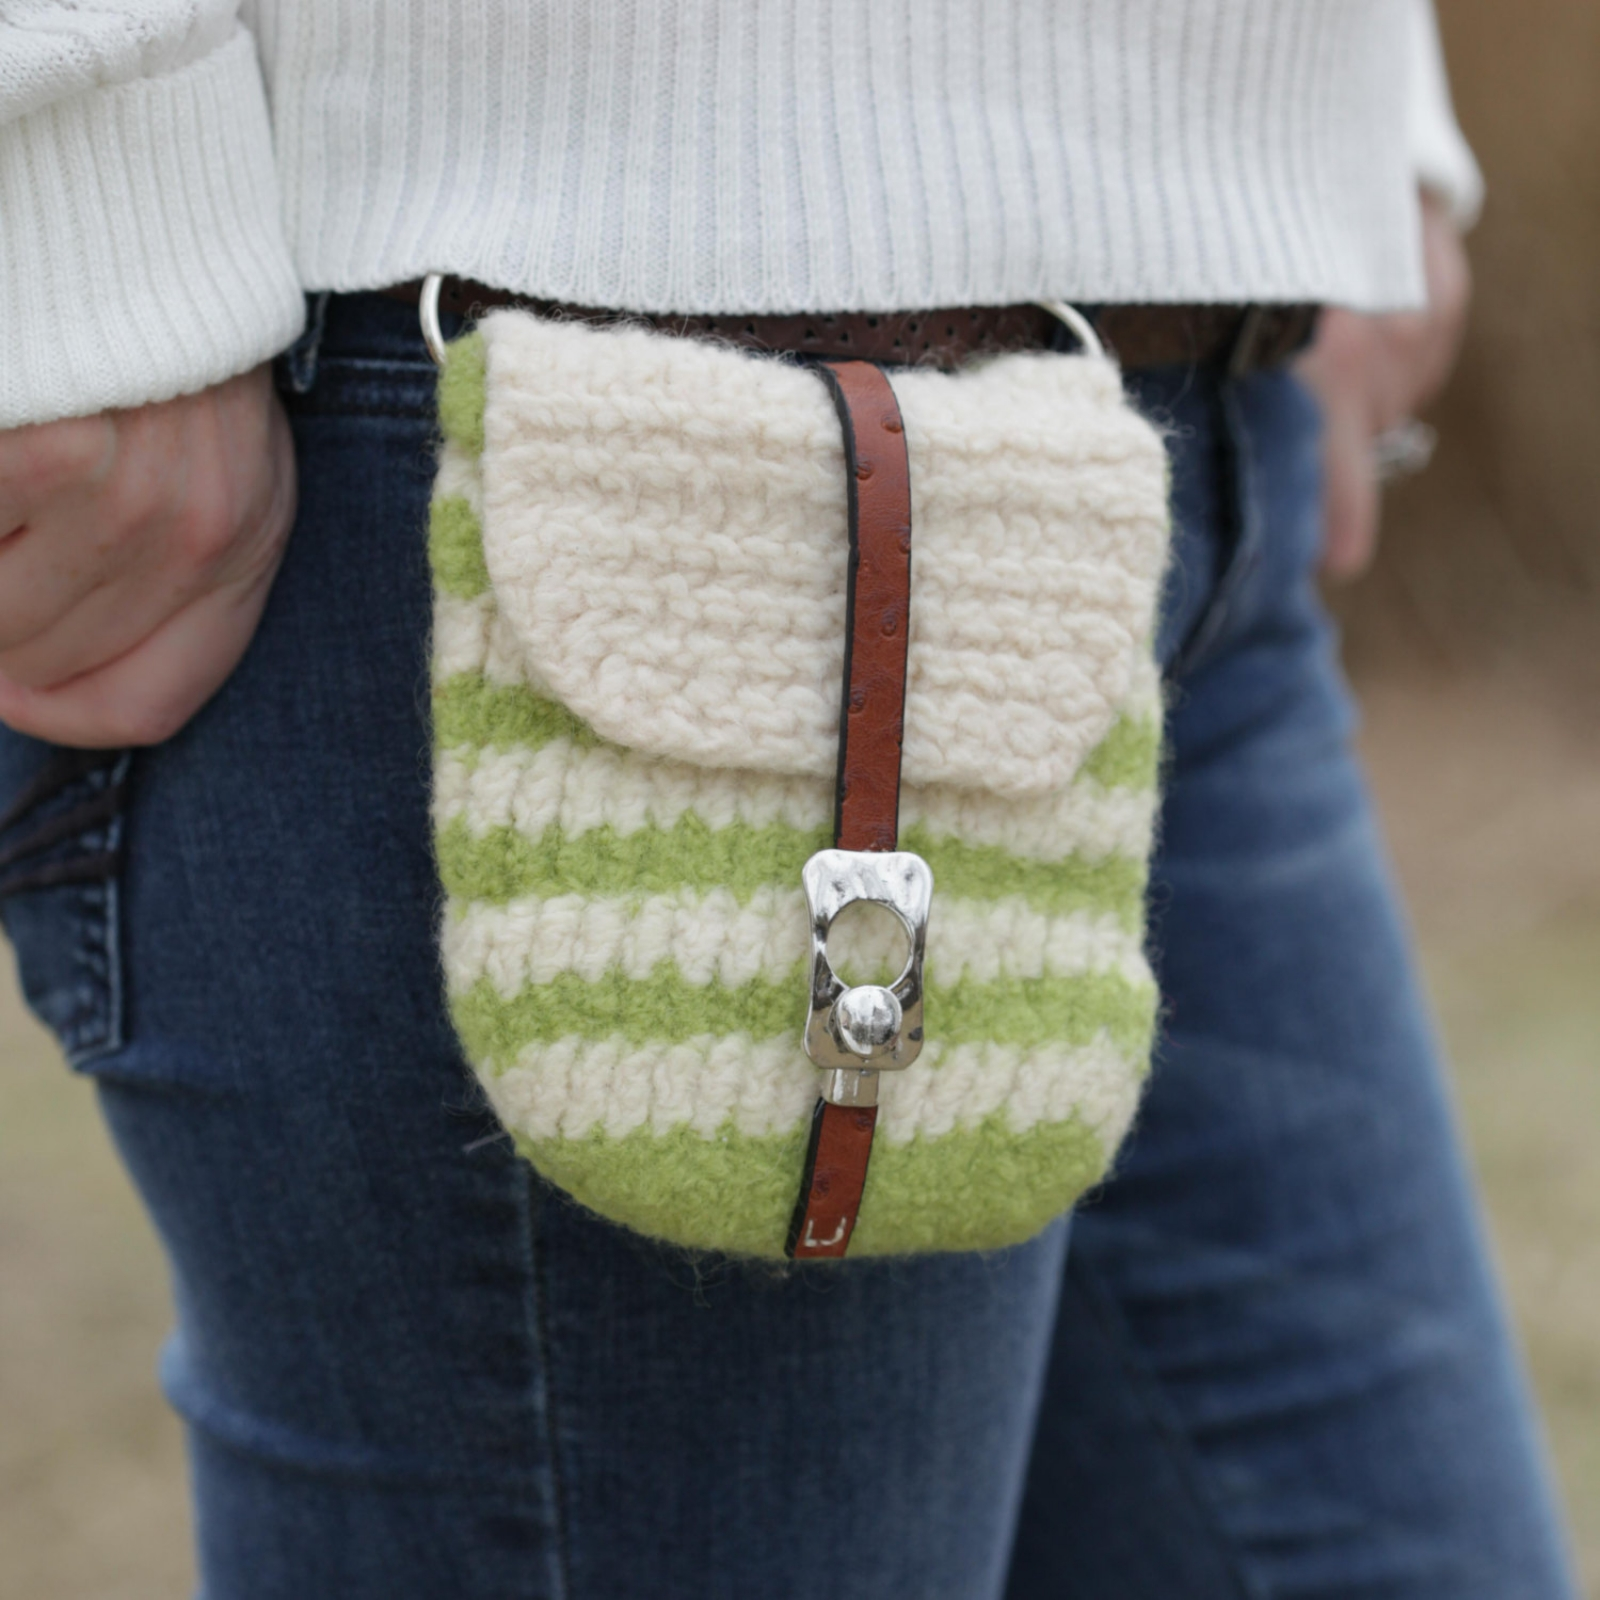 LOOM KNIT HANDBAG PATTERNS LOOM KNIT PURSE, LOOM KNIT TOTE, FELTED ...